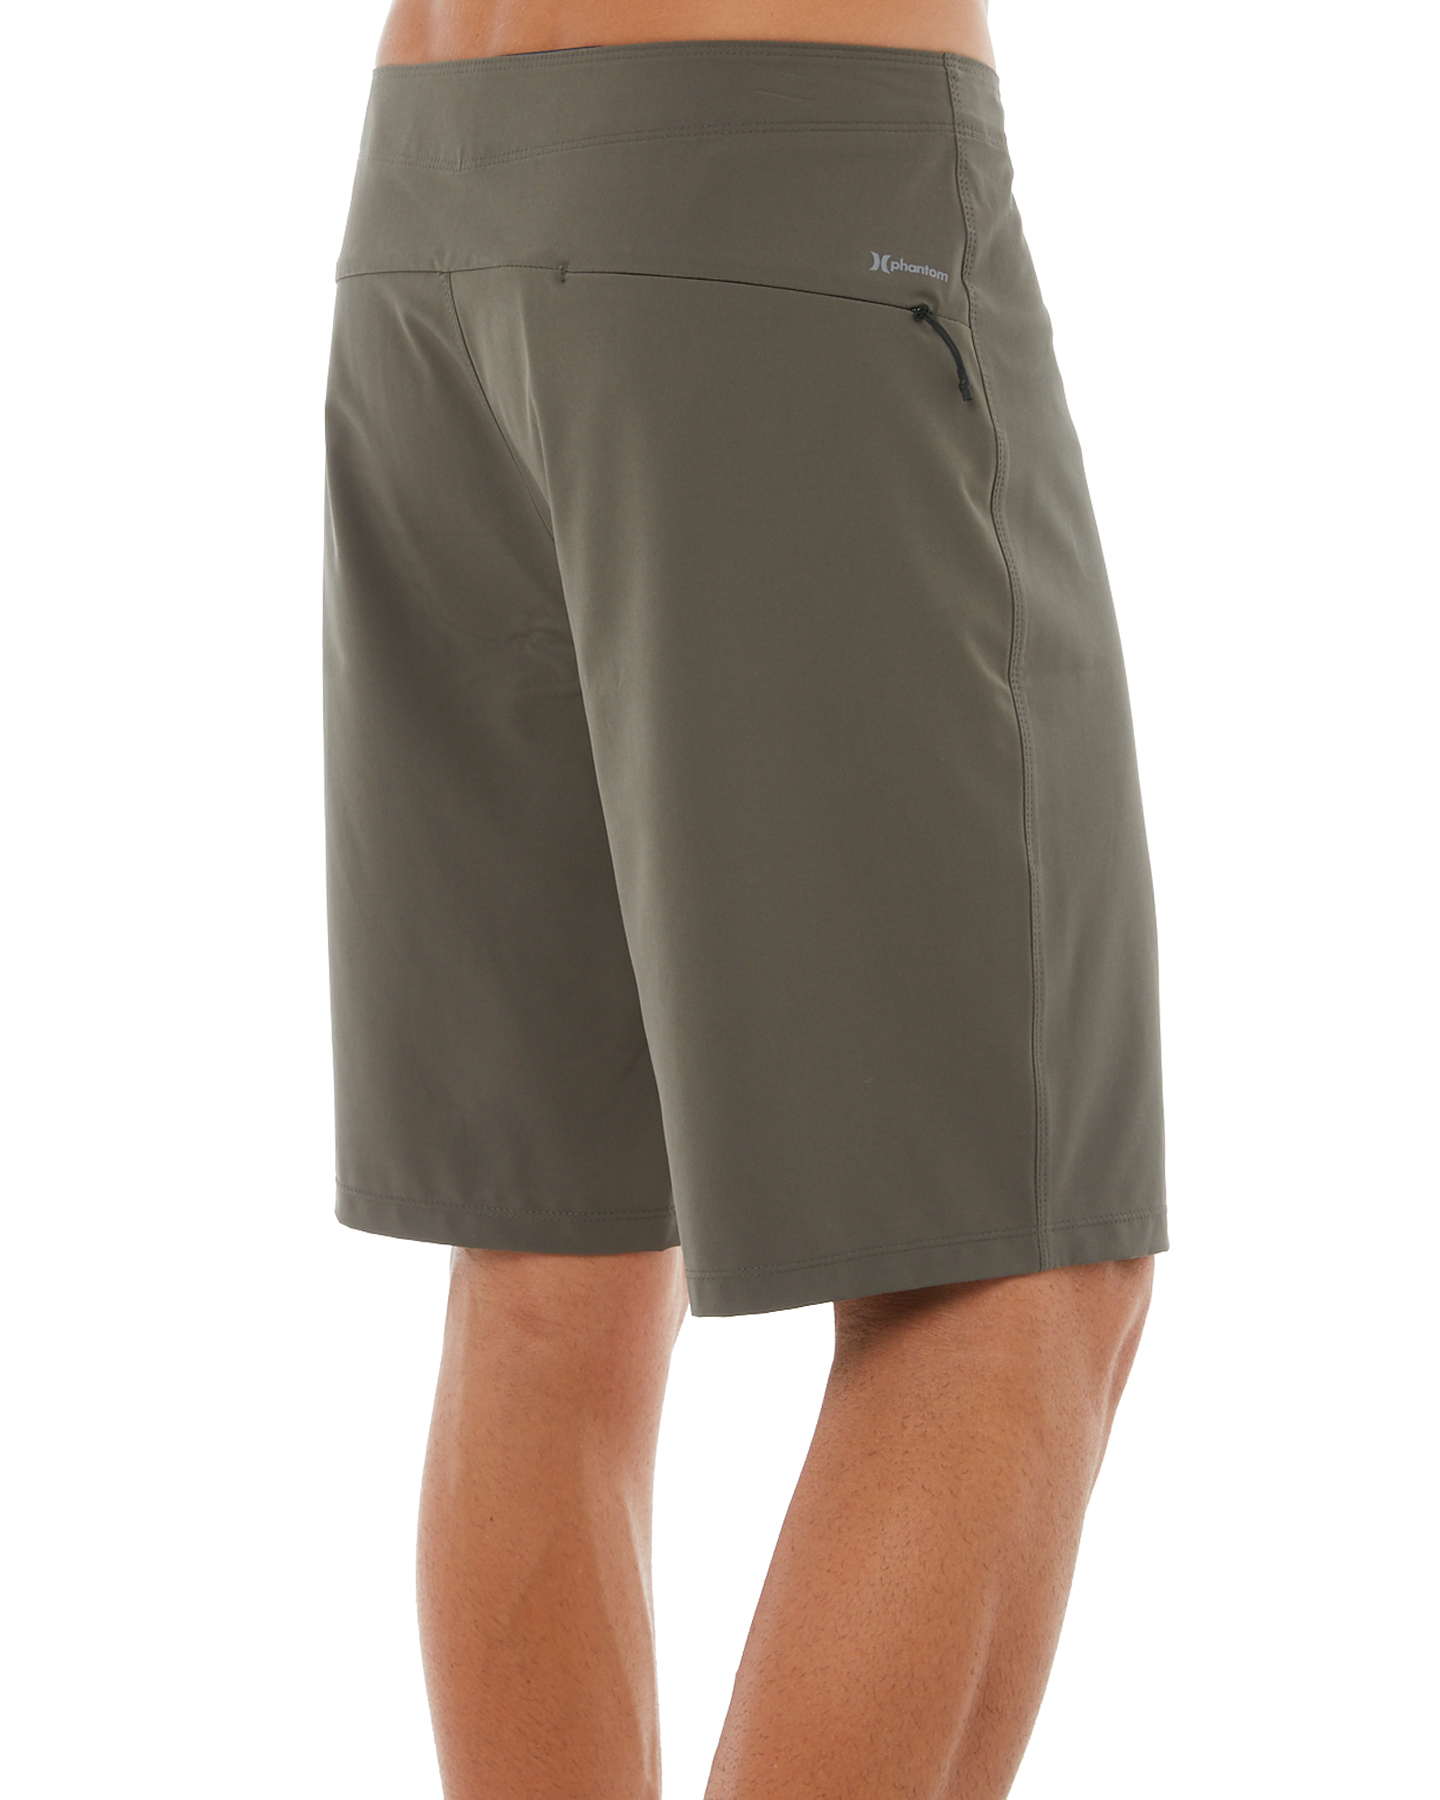 7e05aa9184 New Hurley Men's One And Only 2 21 Mens Boardshort Fitted Spandex ...